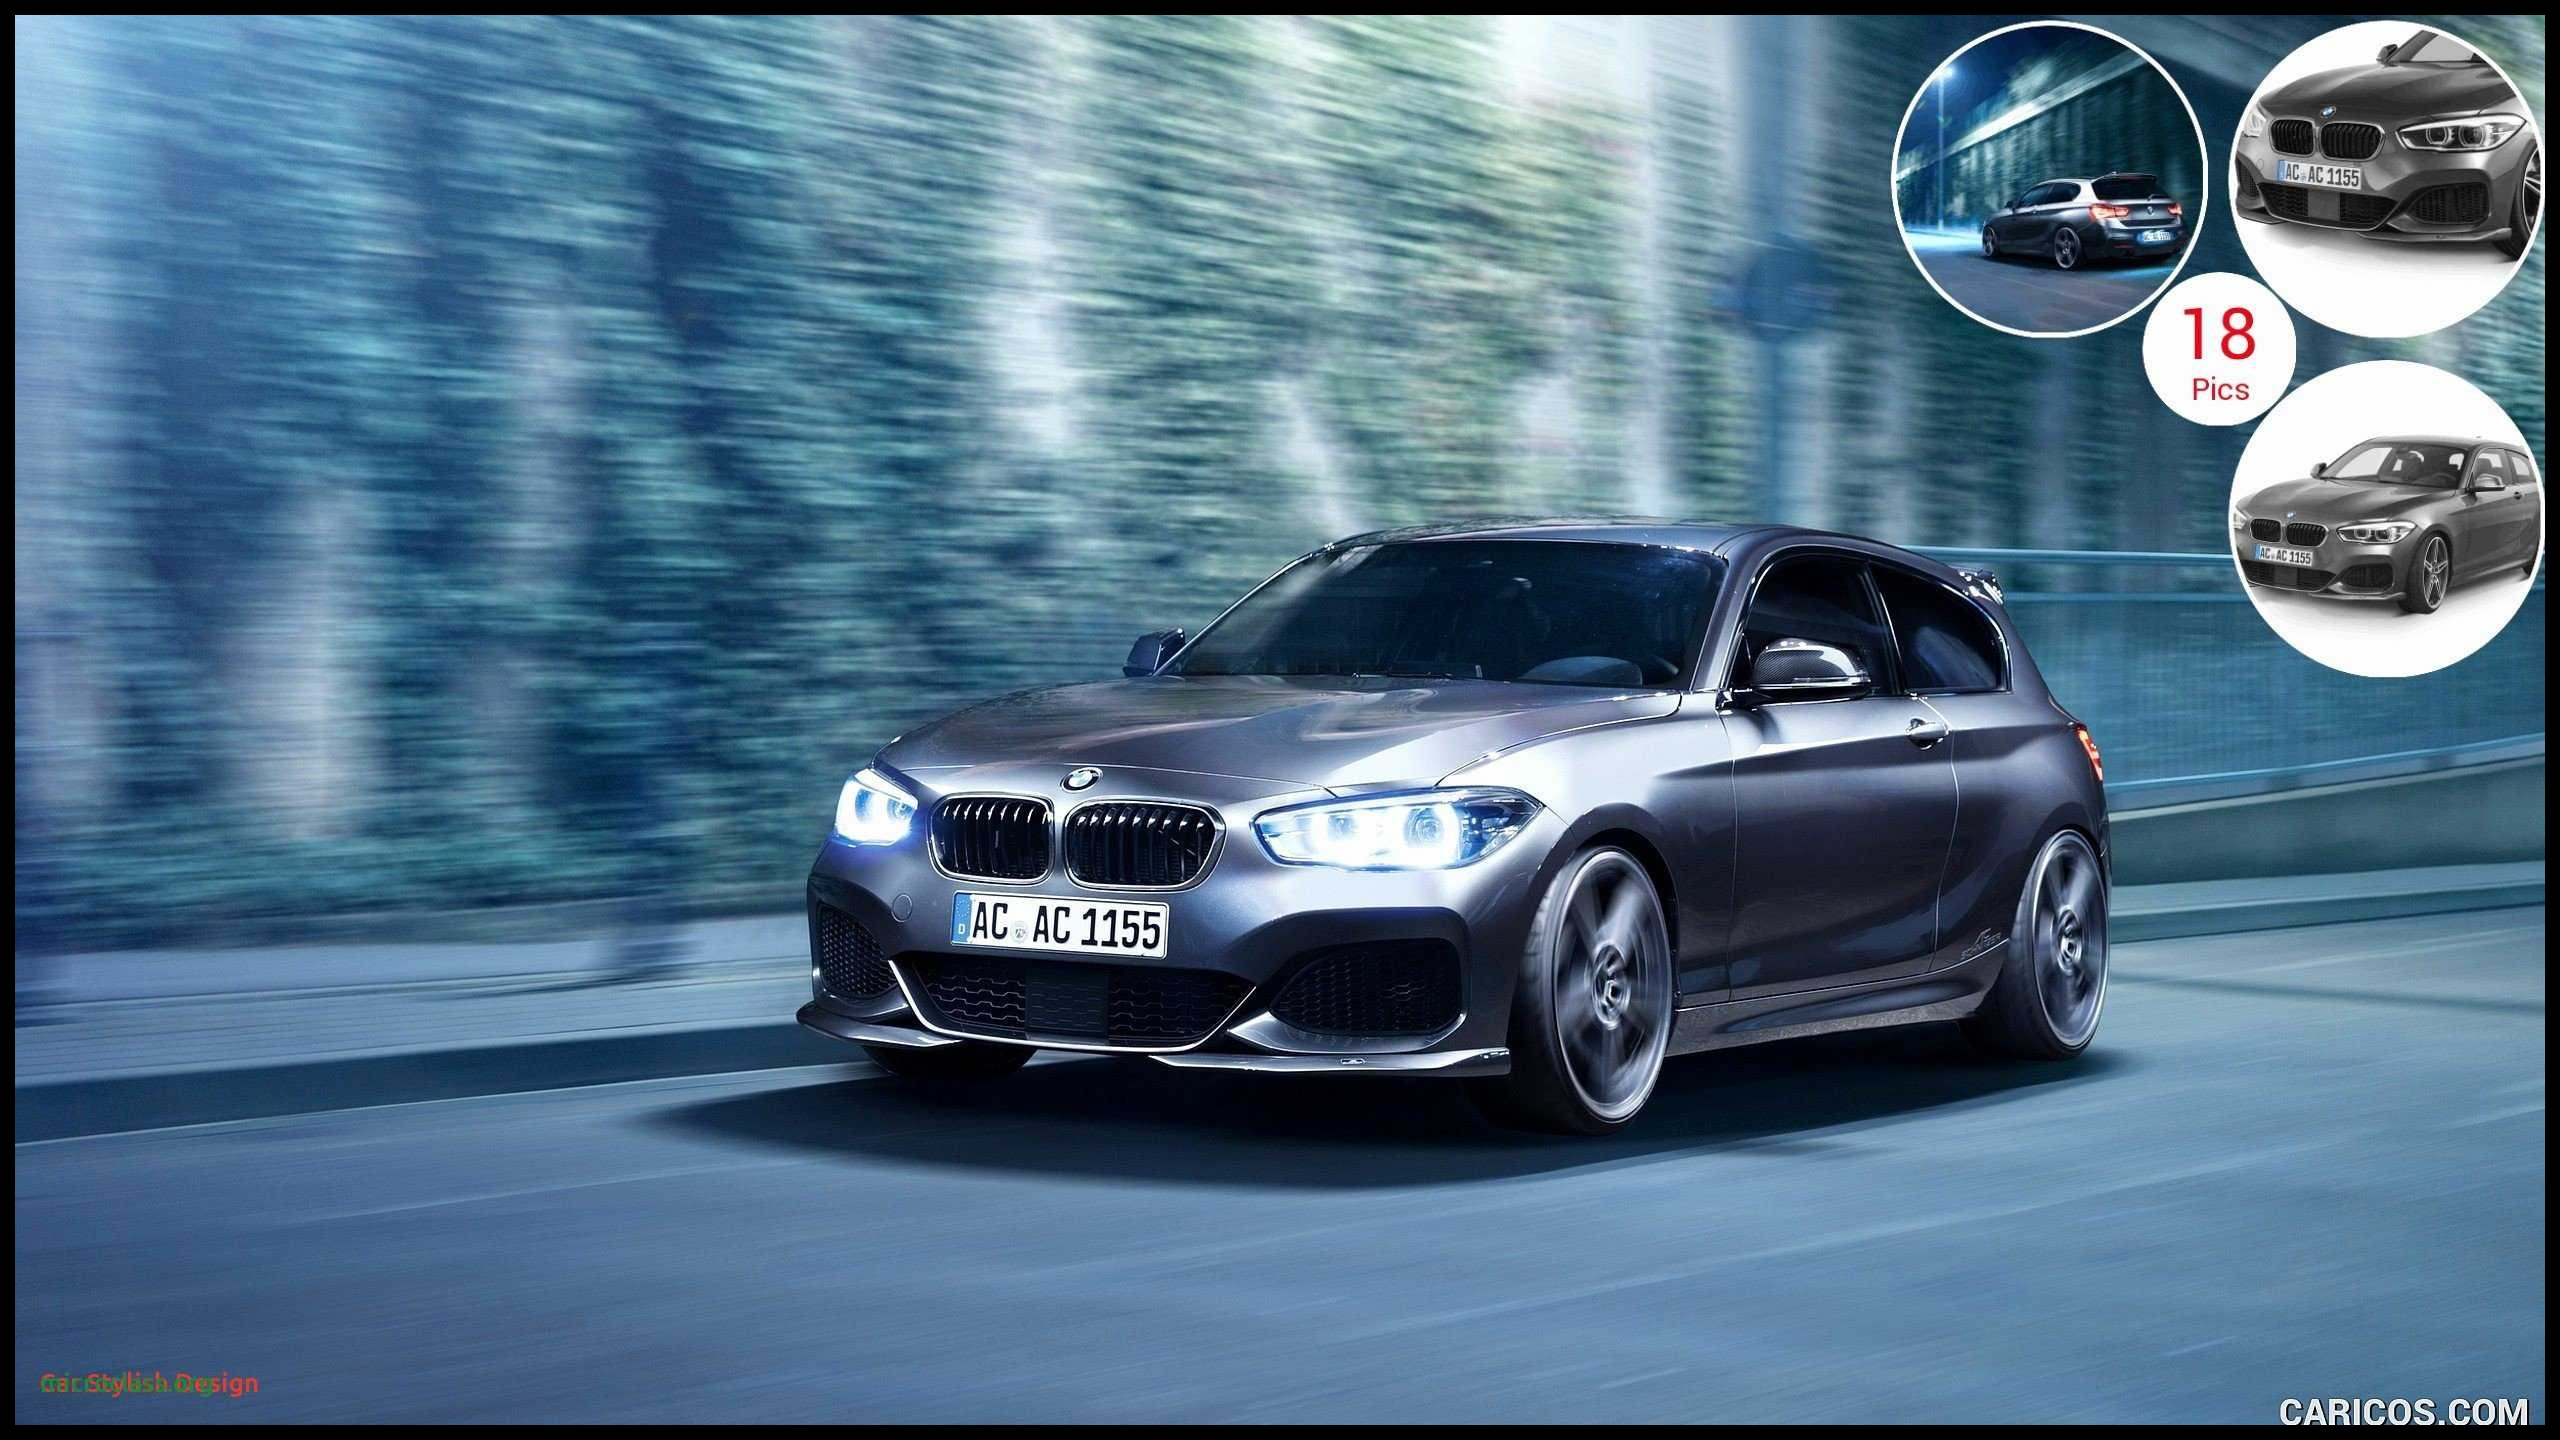 Bmw Car Fresh Hd Car Wallpapers Awesome 2016 Ac Schnitzer Acs1 5 0d Cool Bmw 6 Series Wallpaper